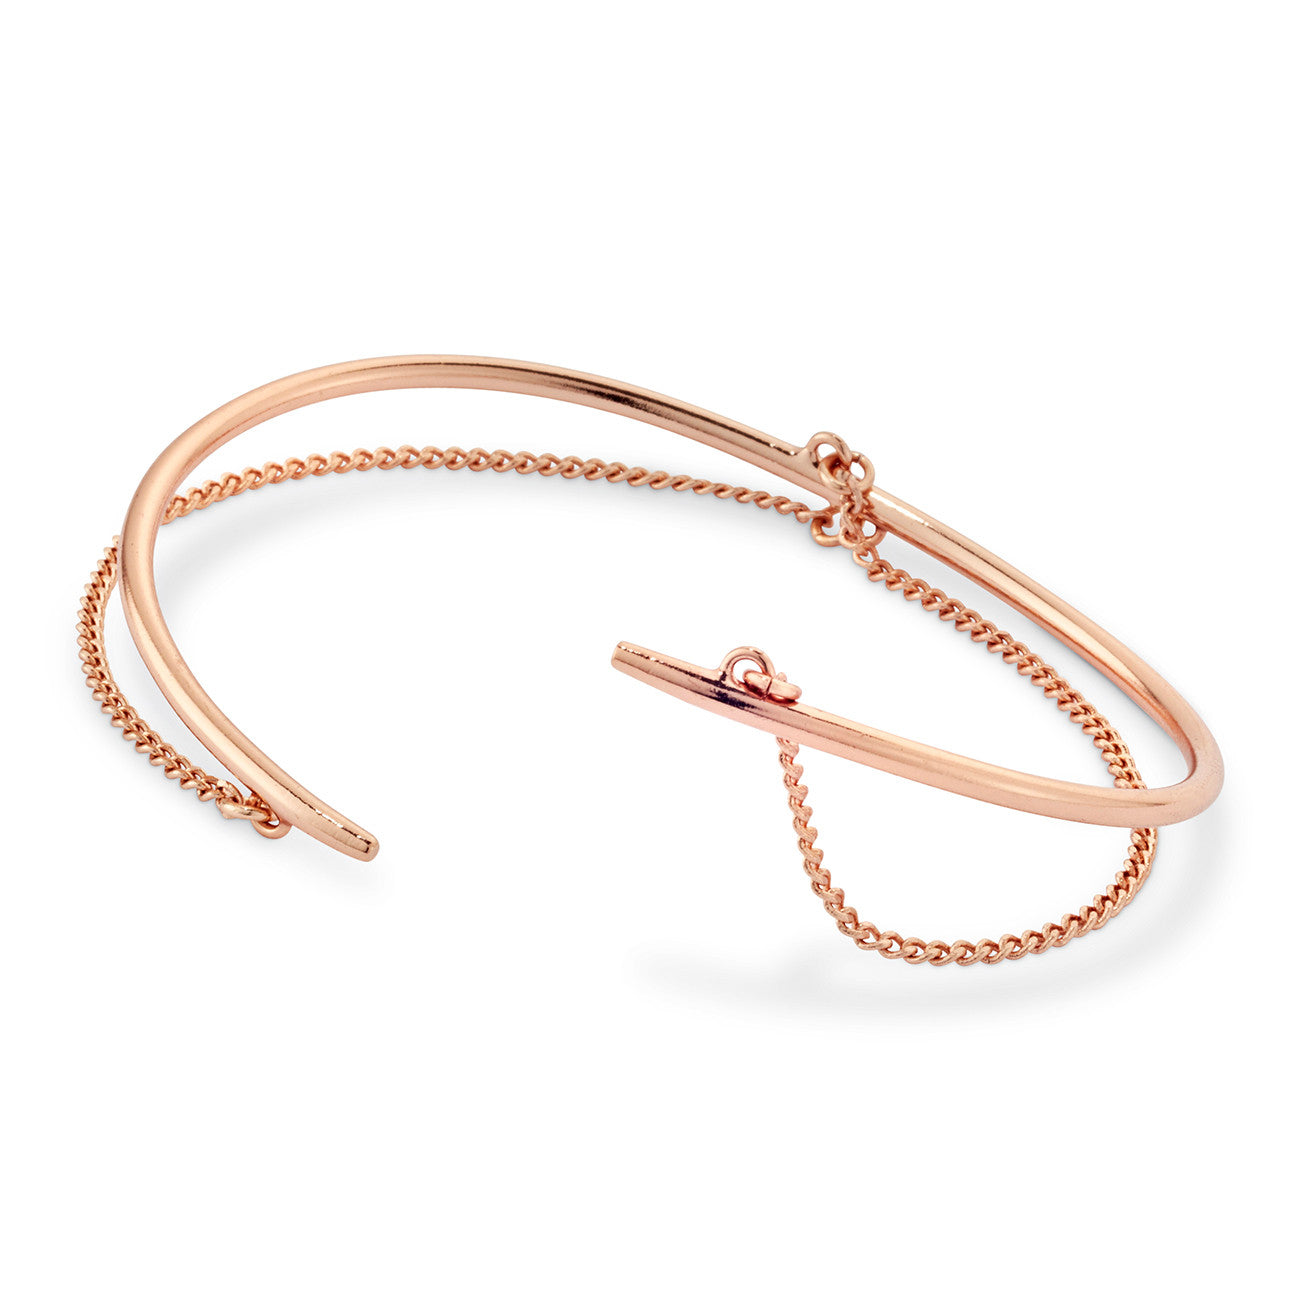 Rill Cuff By Jenny Bird in Rose Gold